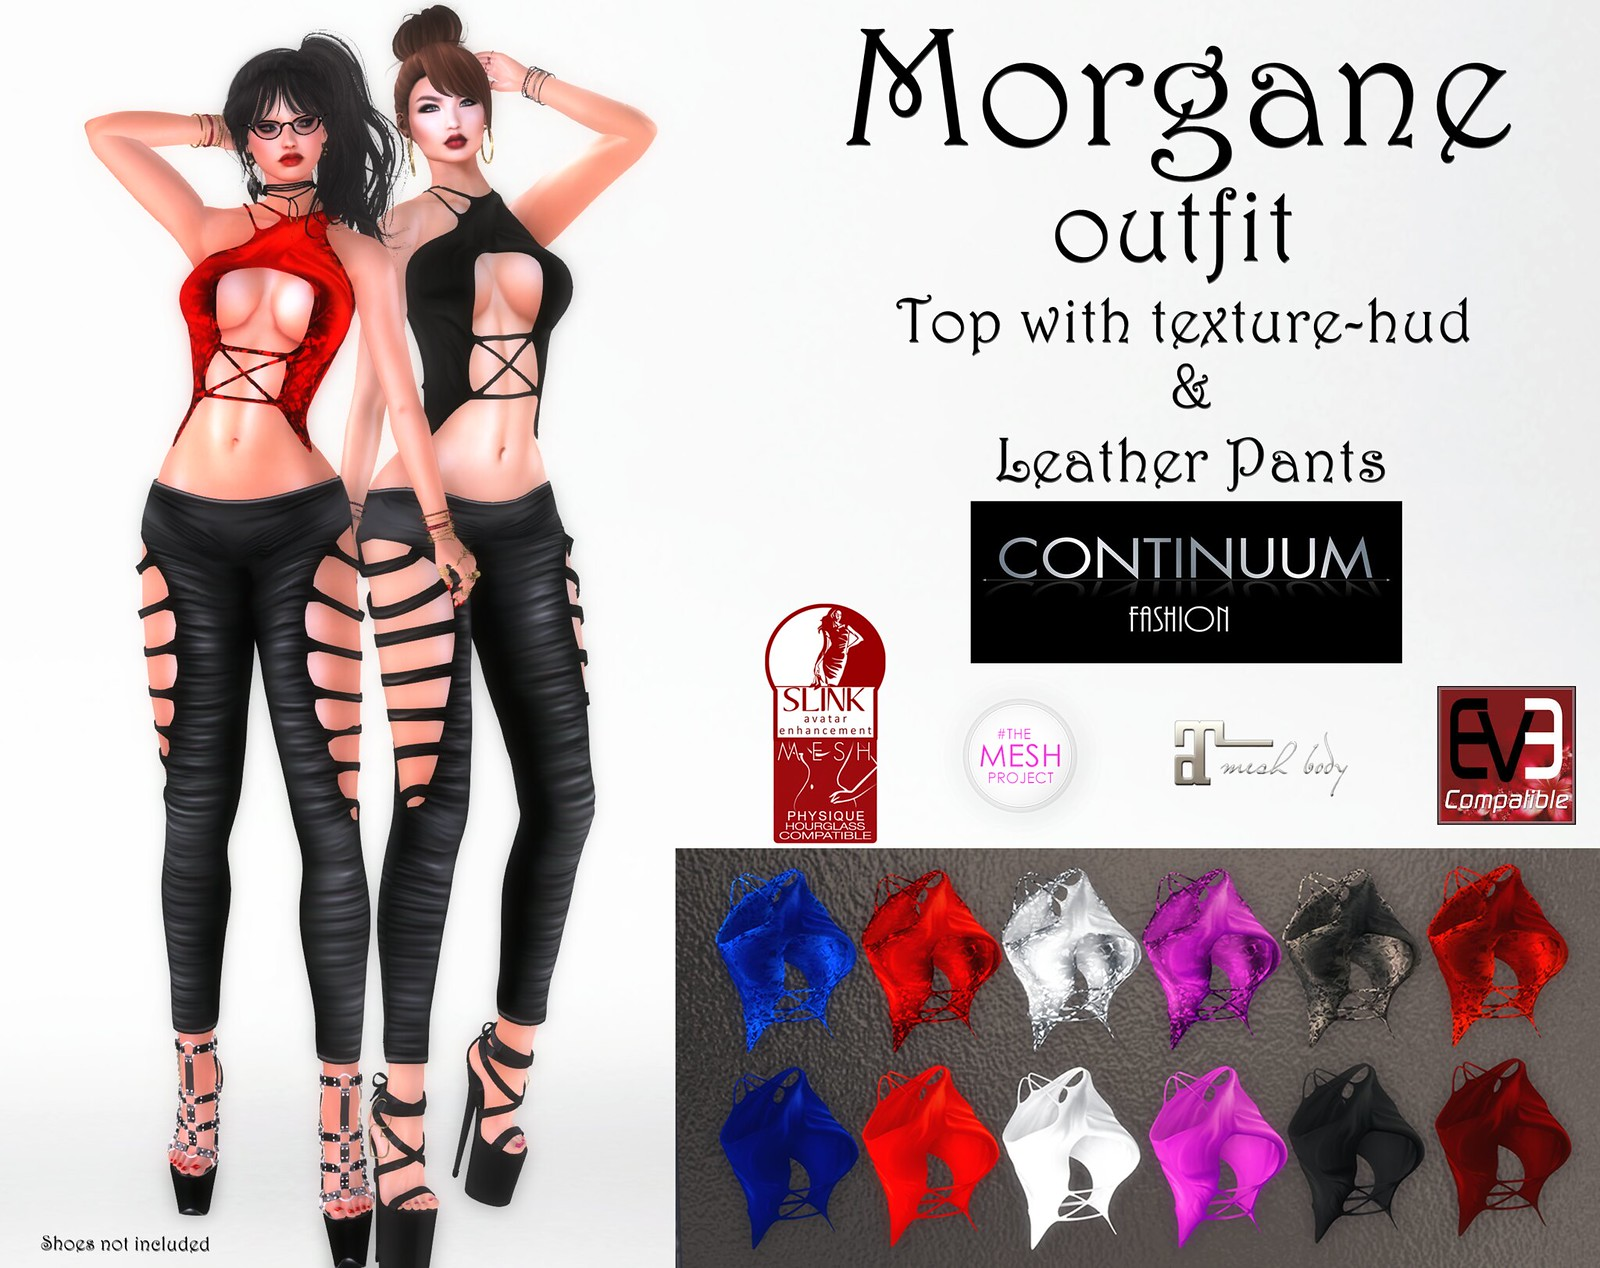 New! Continuum Fashion Morgane Outfit